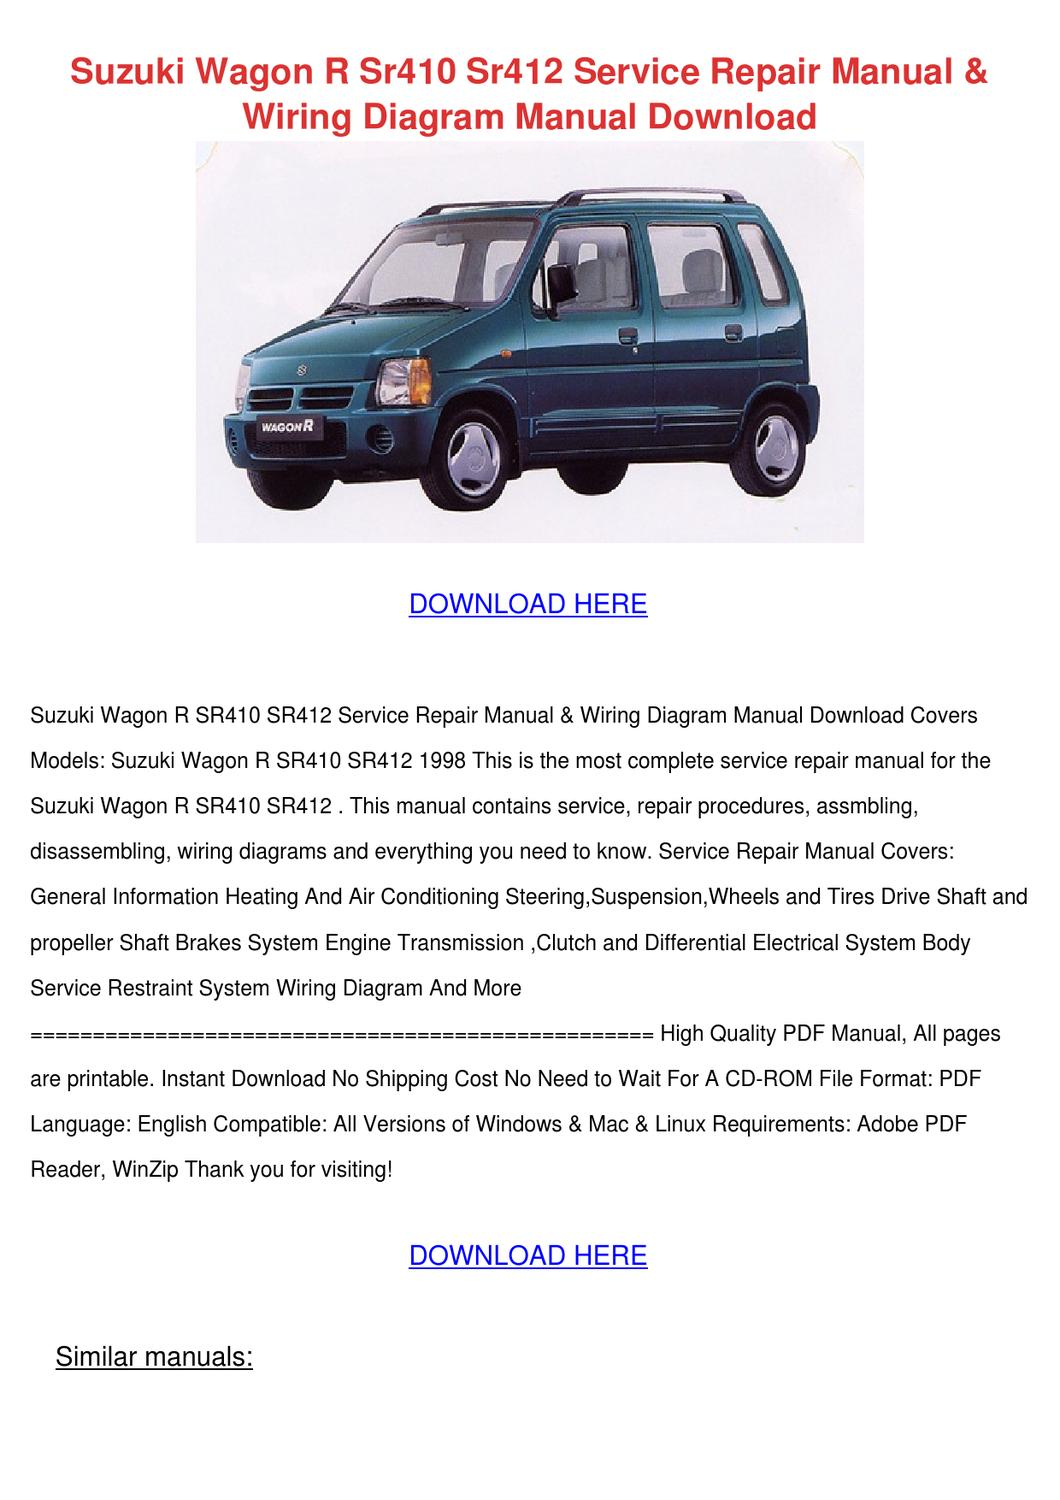 Suzuki Wagon R Sr410 Sr412 Service Repair Man By Yadira Angeli Issuu 1982 Motorcycle Wiring Diagrams